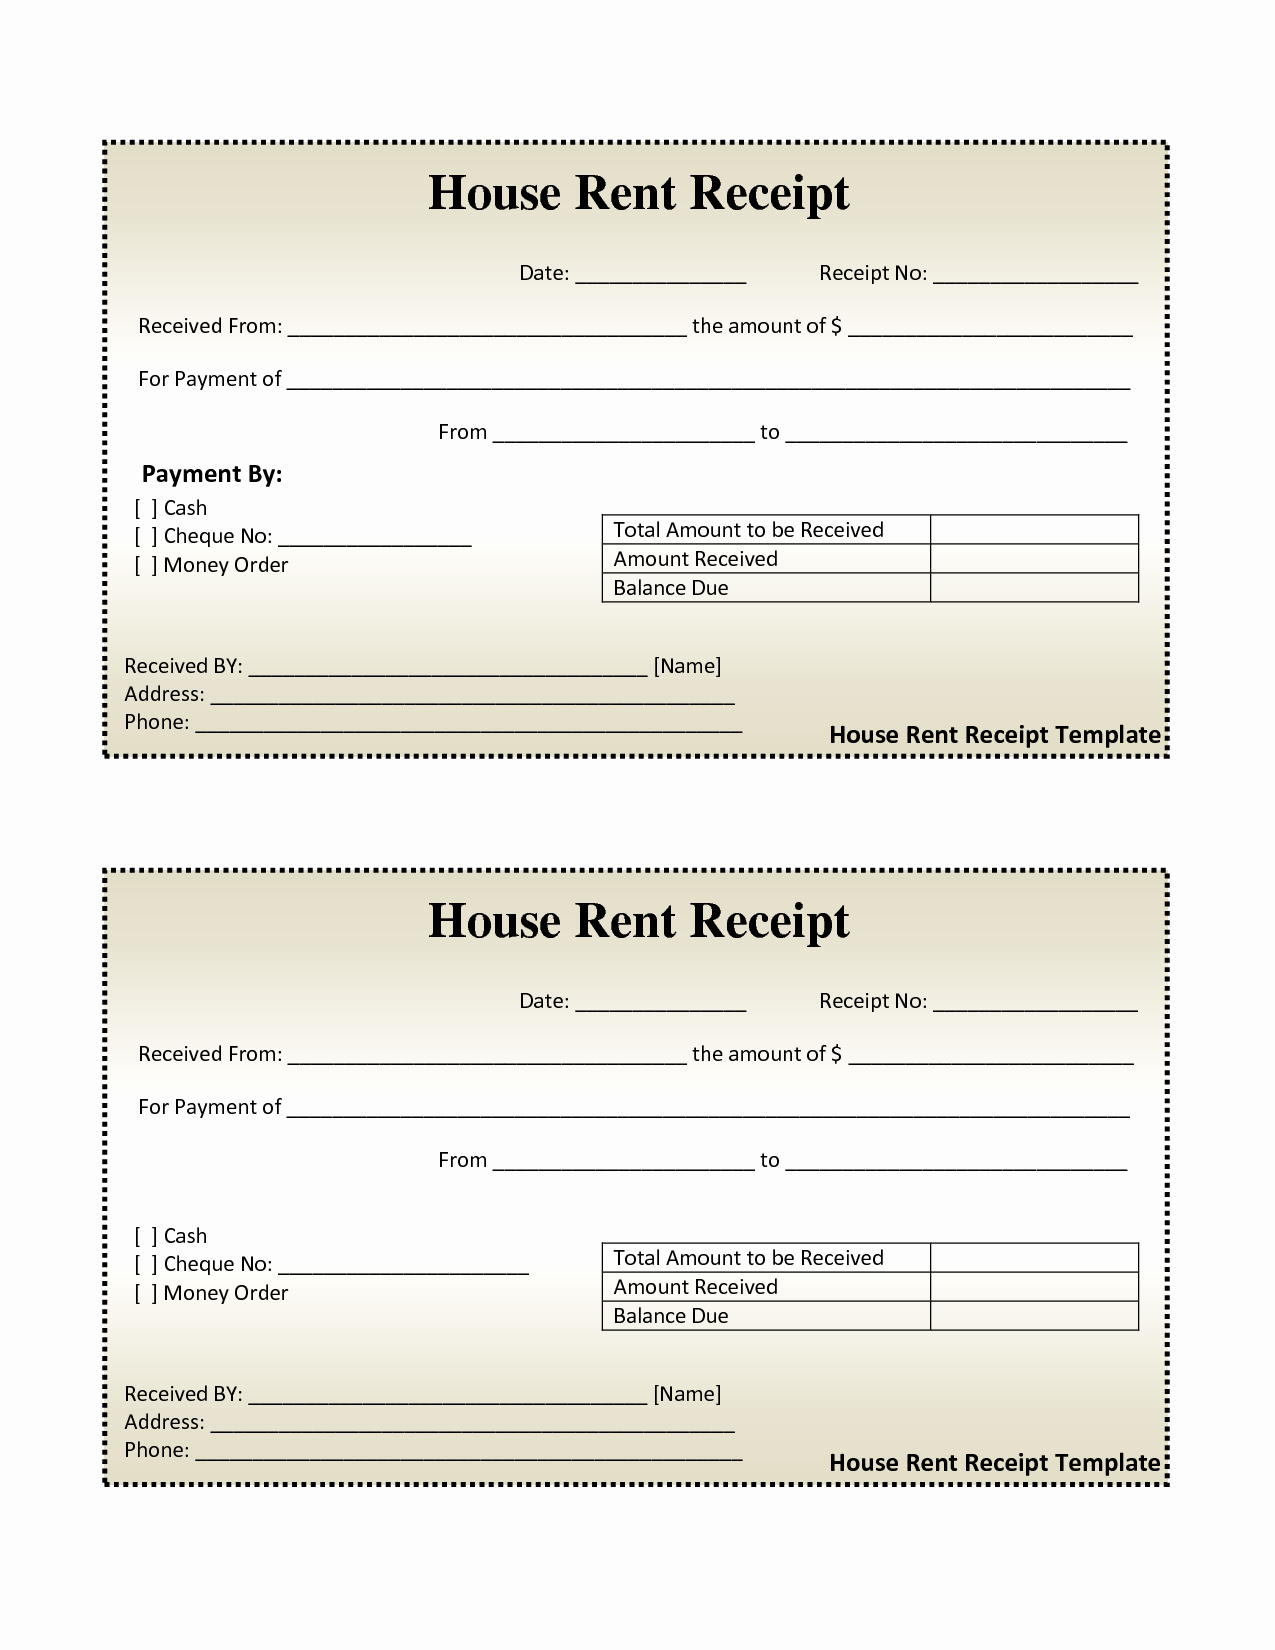 Rent Receipt Templates Free Best Of Free House Rental Invoice